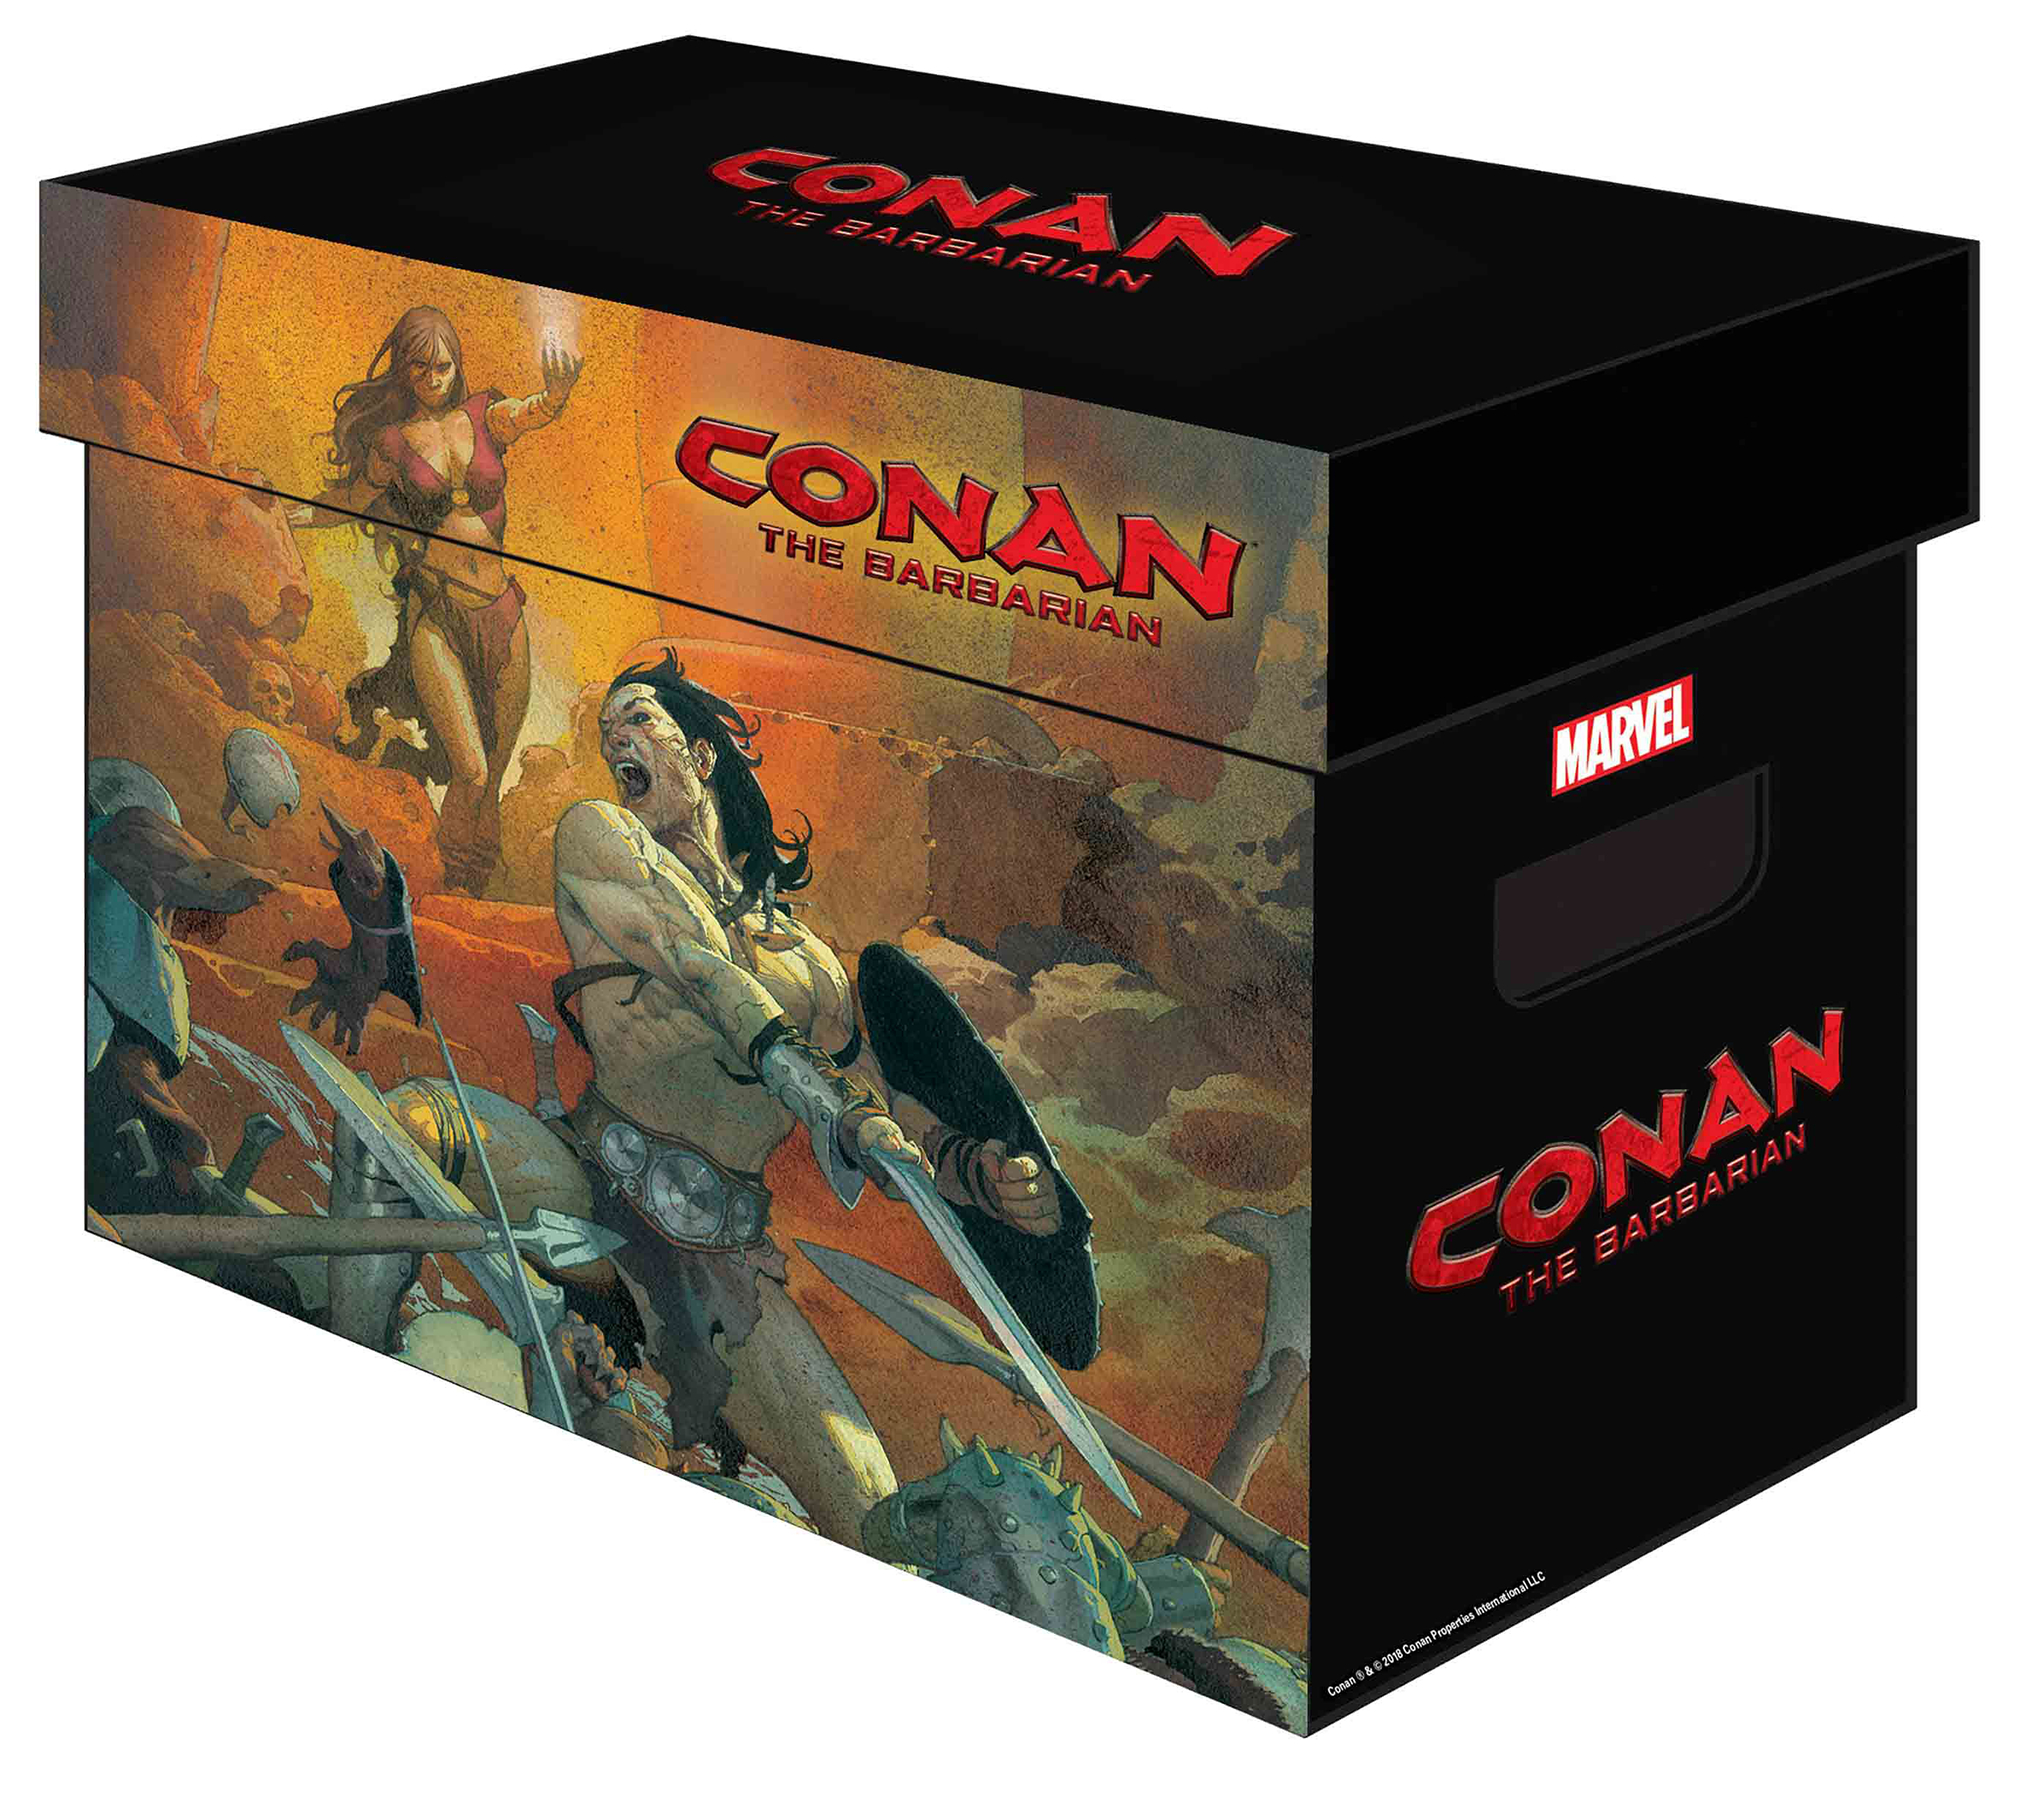 MARVEL GRAPHIC COMIC BOXES CONAN BARBARIAN (BUNDLE OF 5) (NE